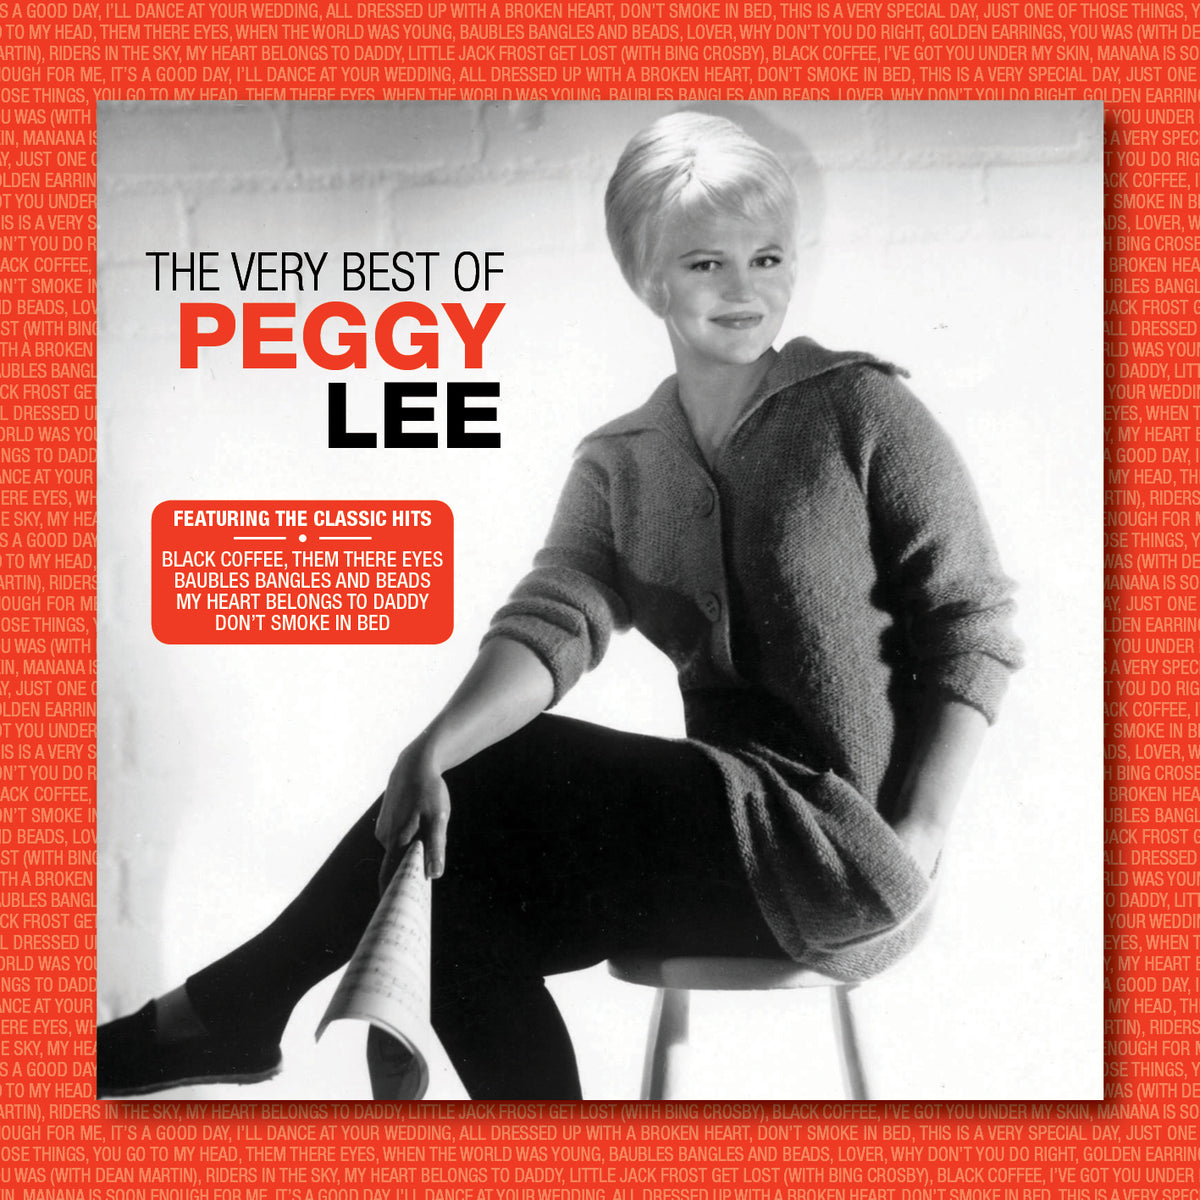 FANFARE164 - PEGGY LEE - THE VERY BEST O